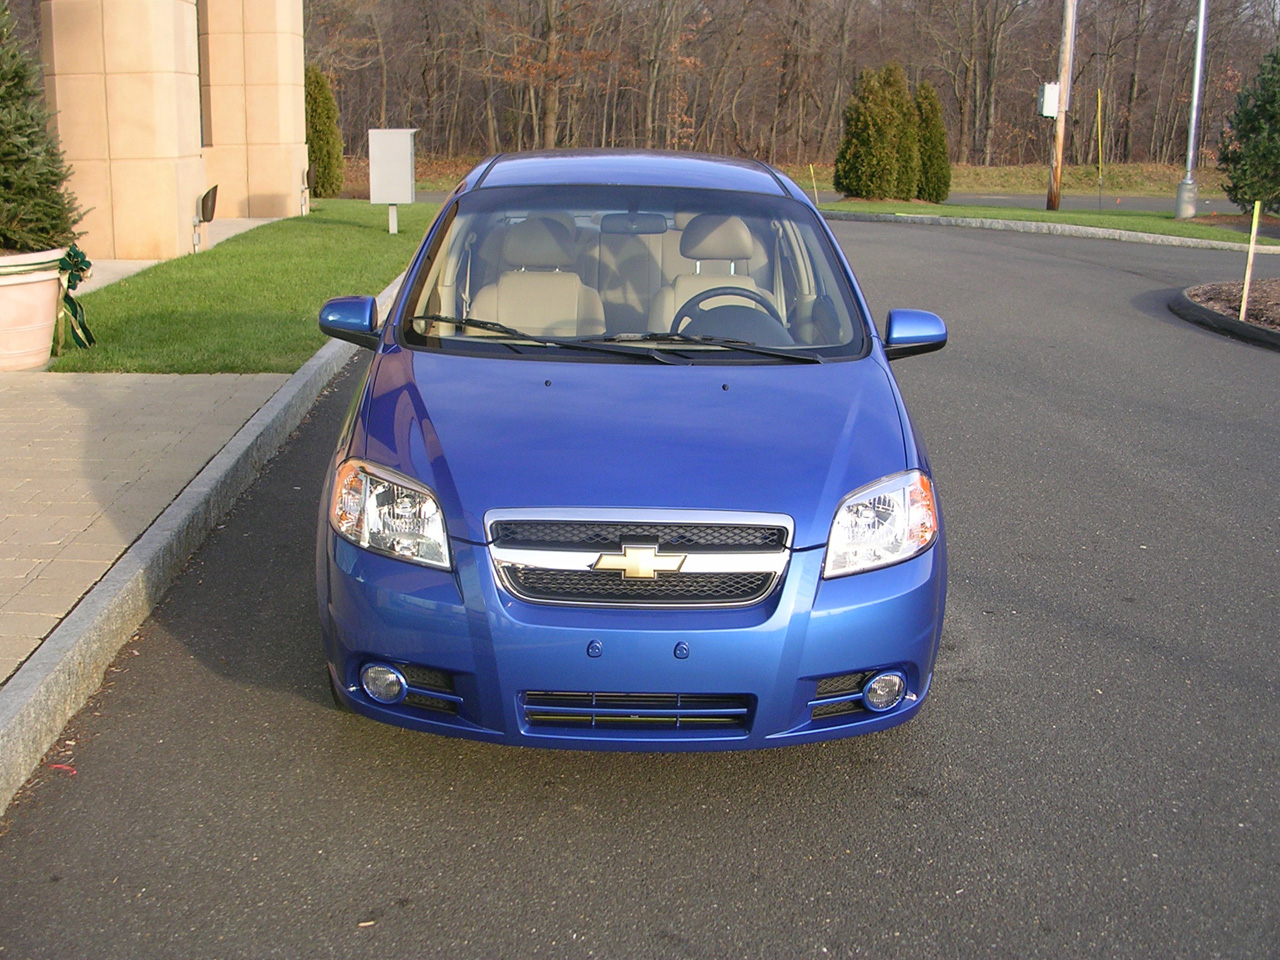 gm recalls 218 000 chevy aveo models over fire prone lighting. Black Bedroom Furniture Sets. Home Design Ideas